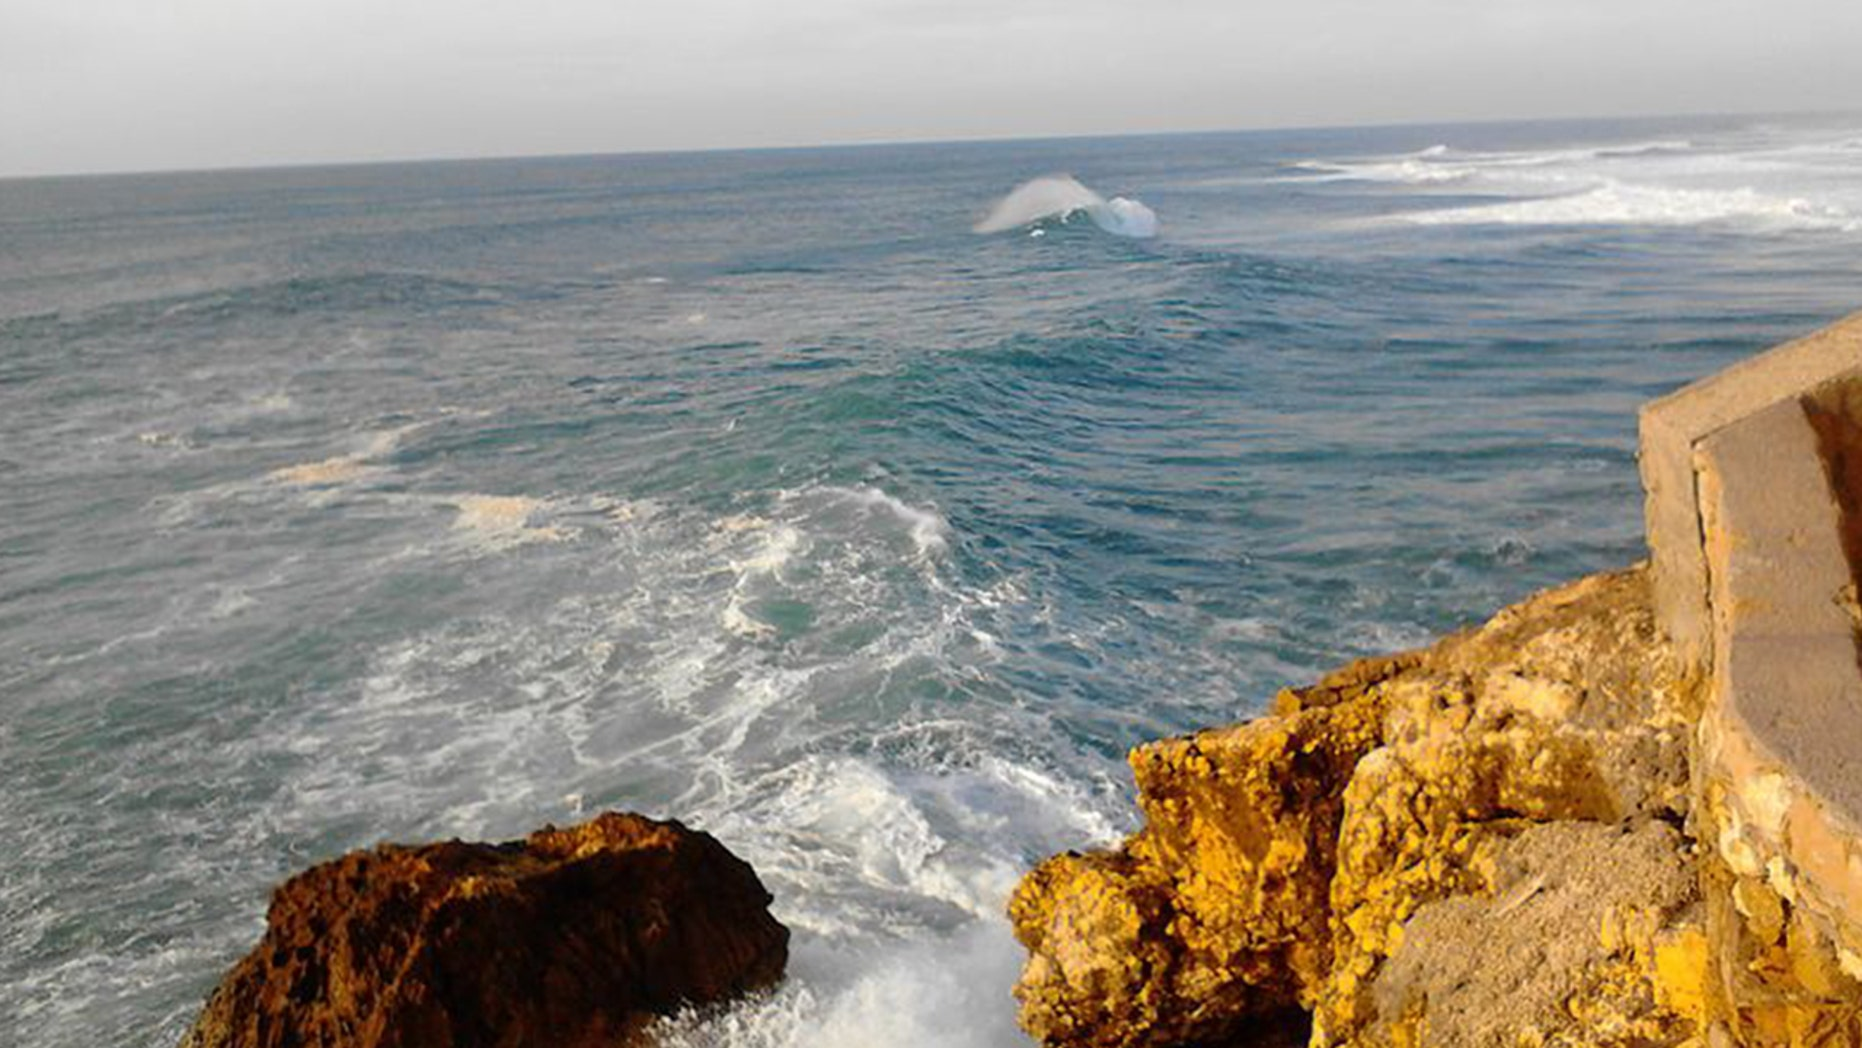 Pictured is the Praia do Norte in Nazare in Portugal where a German man died Monday base jumping after his parachute did not open.